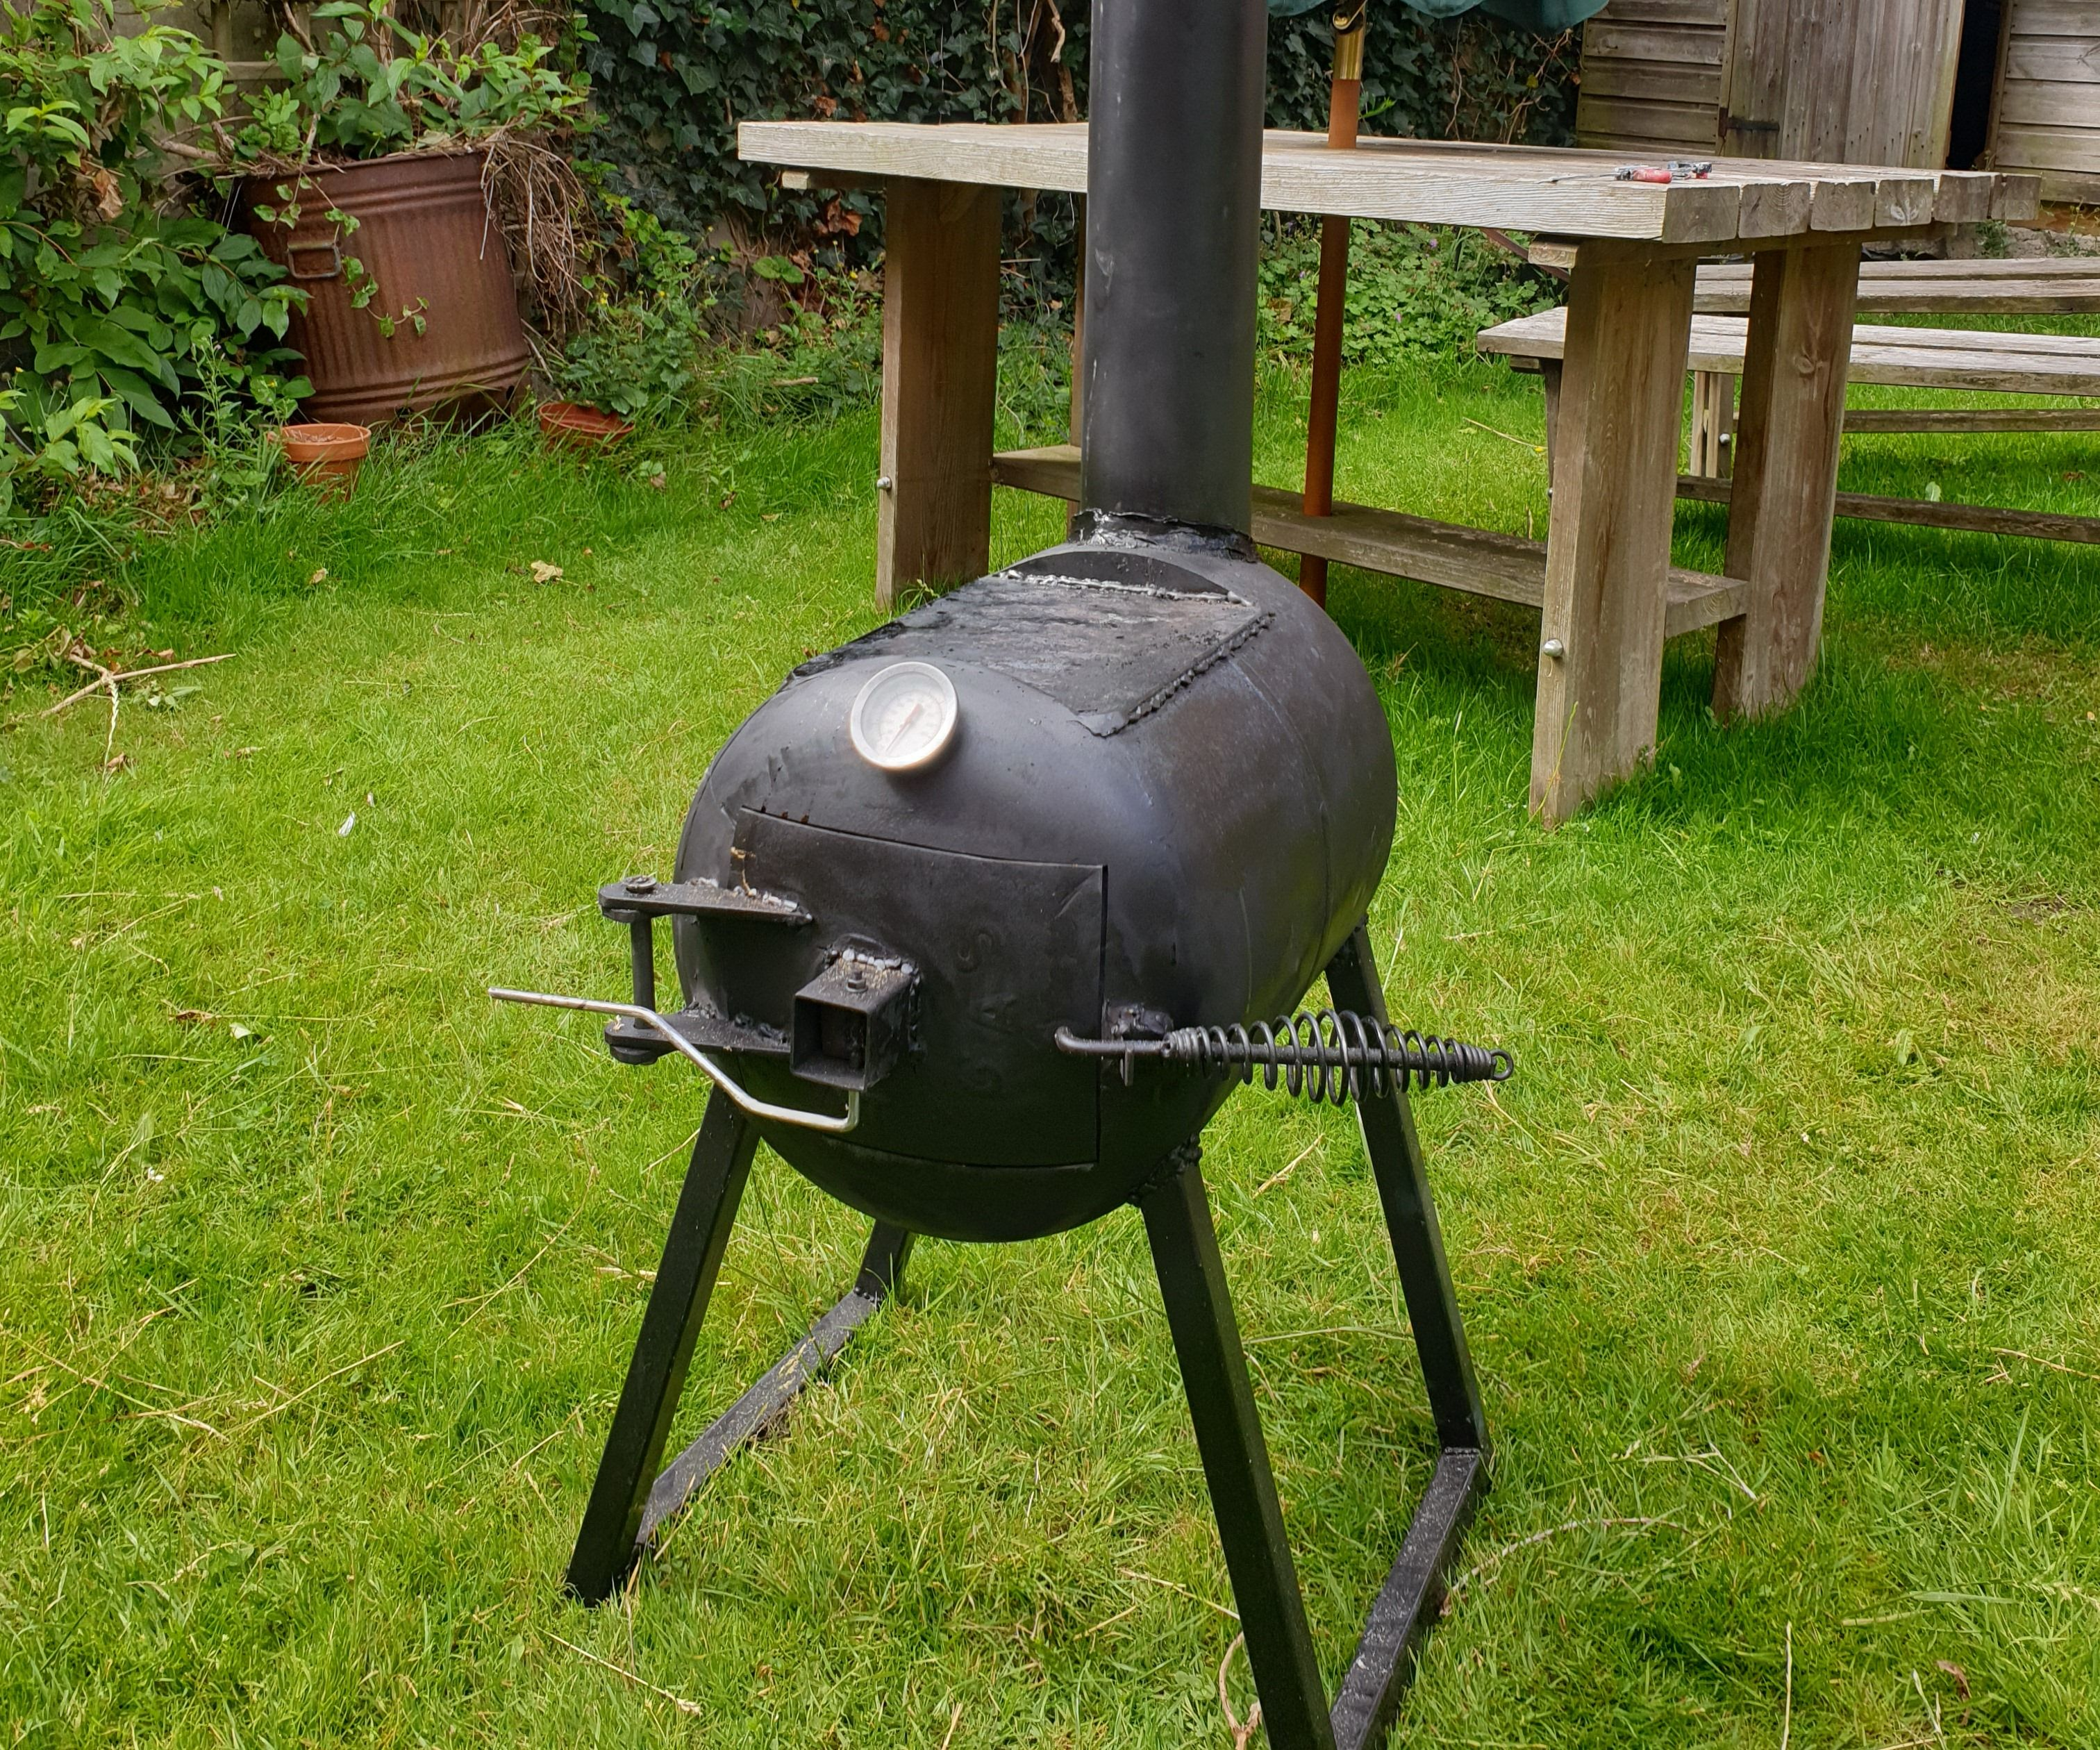 Wood Burning Stove With Hotplate From Gas Bottle